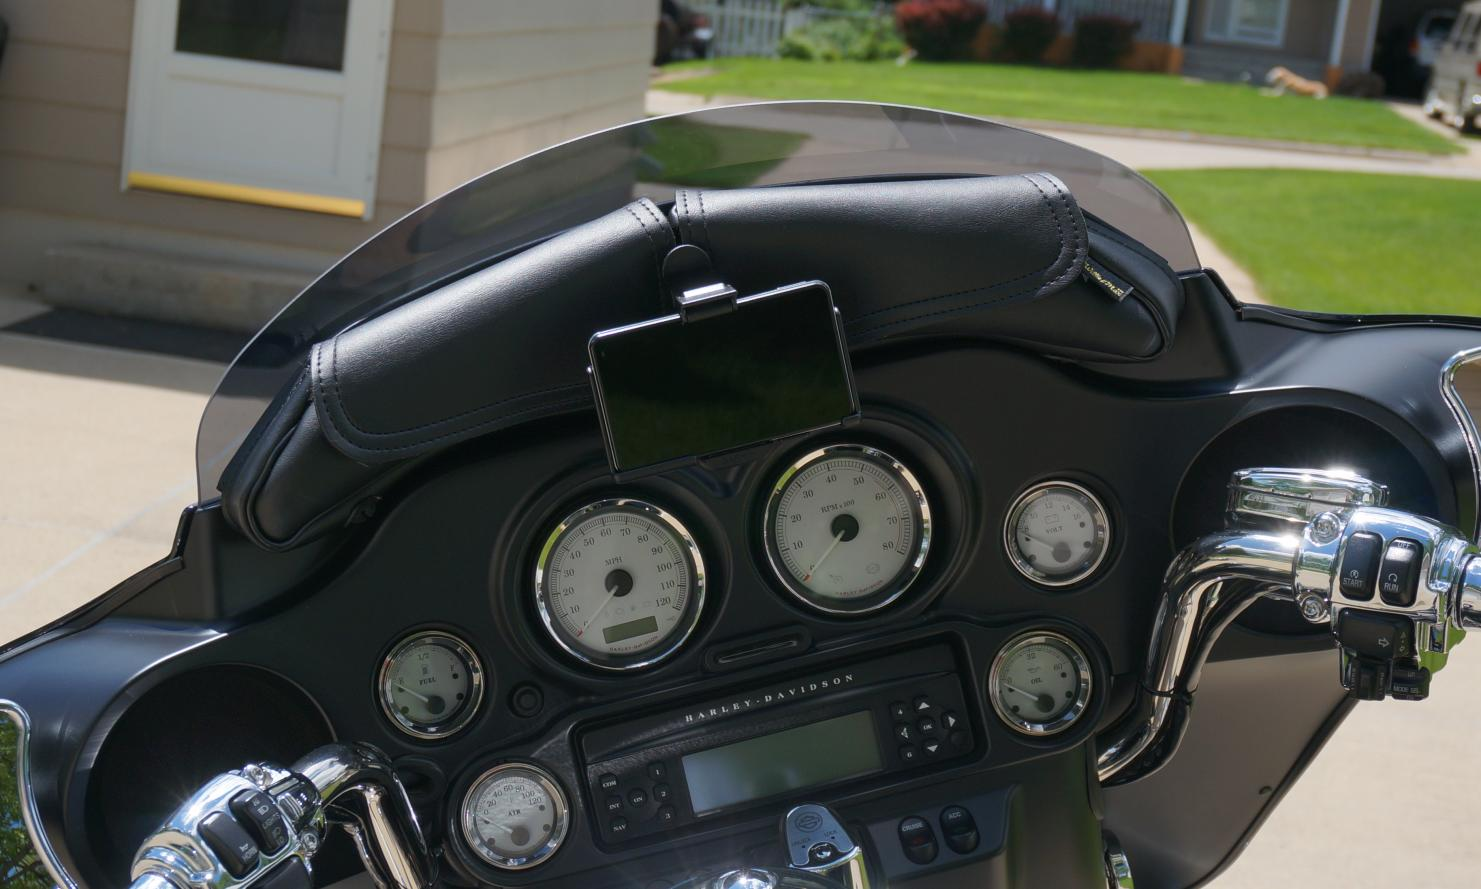 hight resolution of  2013 street glide t amp t fabrications gps